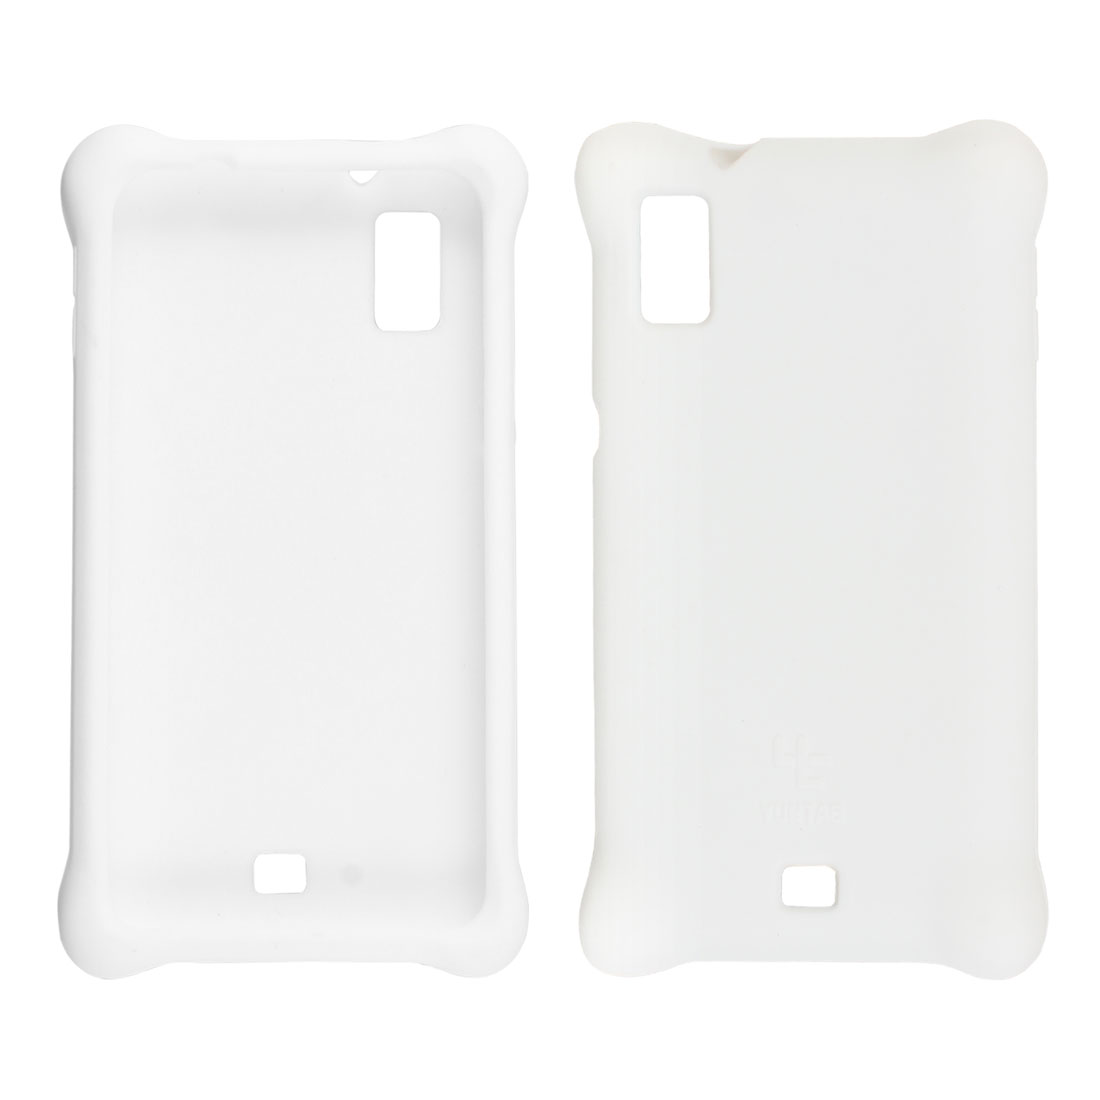 White Silicone Skin Case Cover Protector for Cobalt SP500 Cell Phone